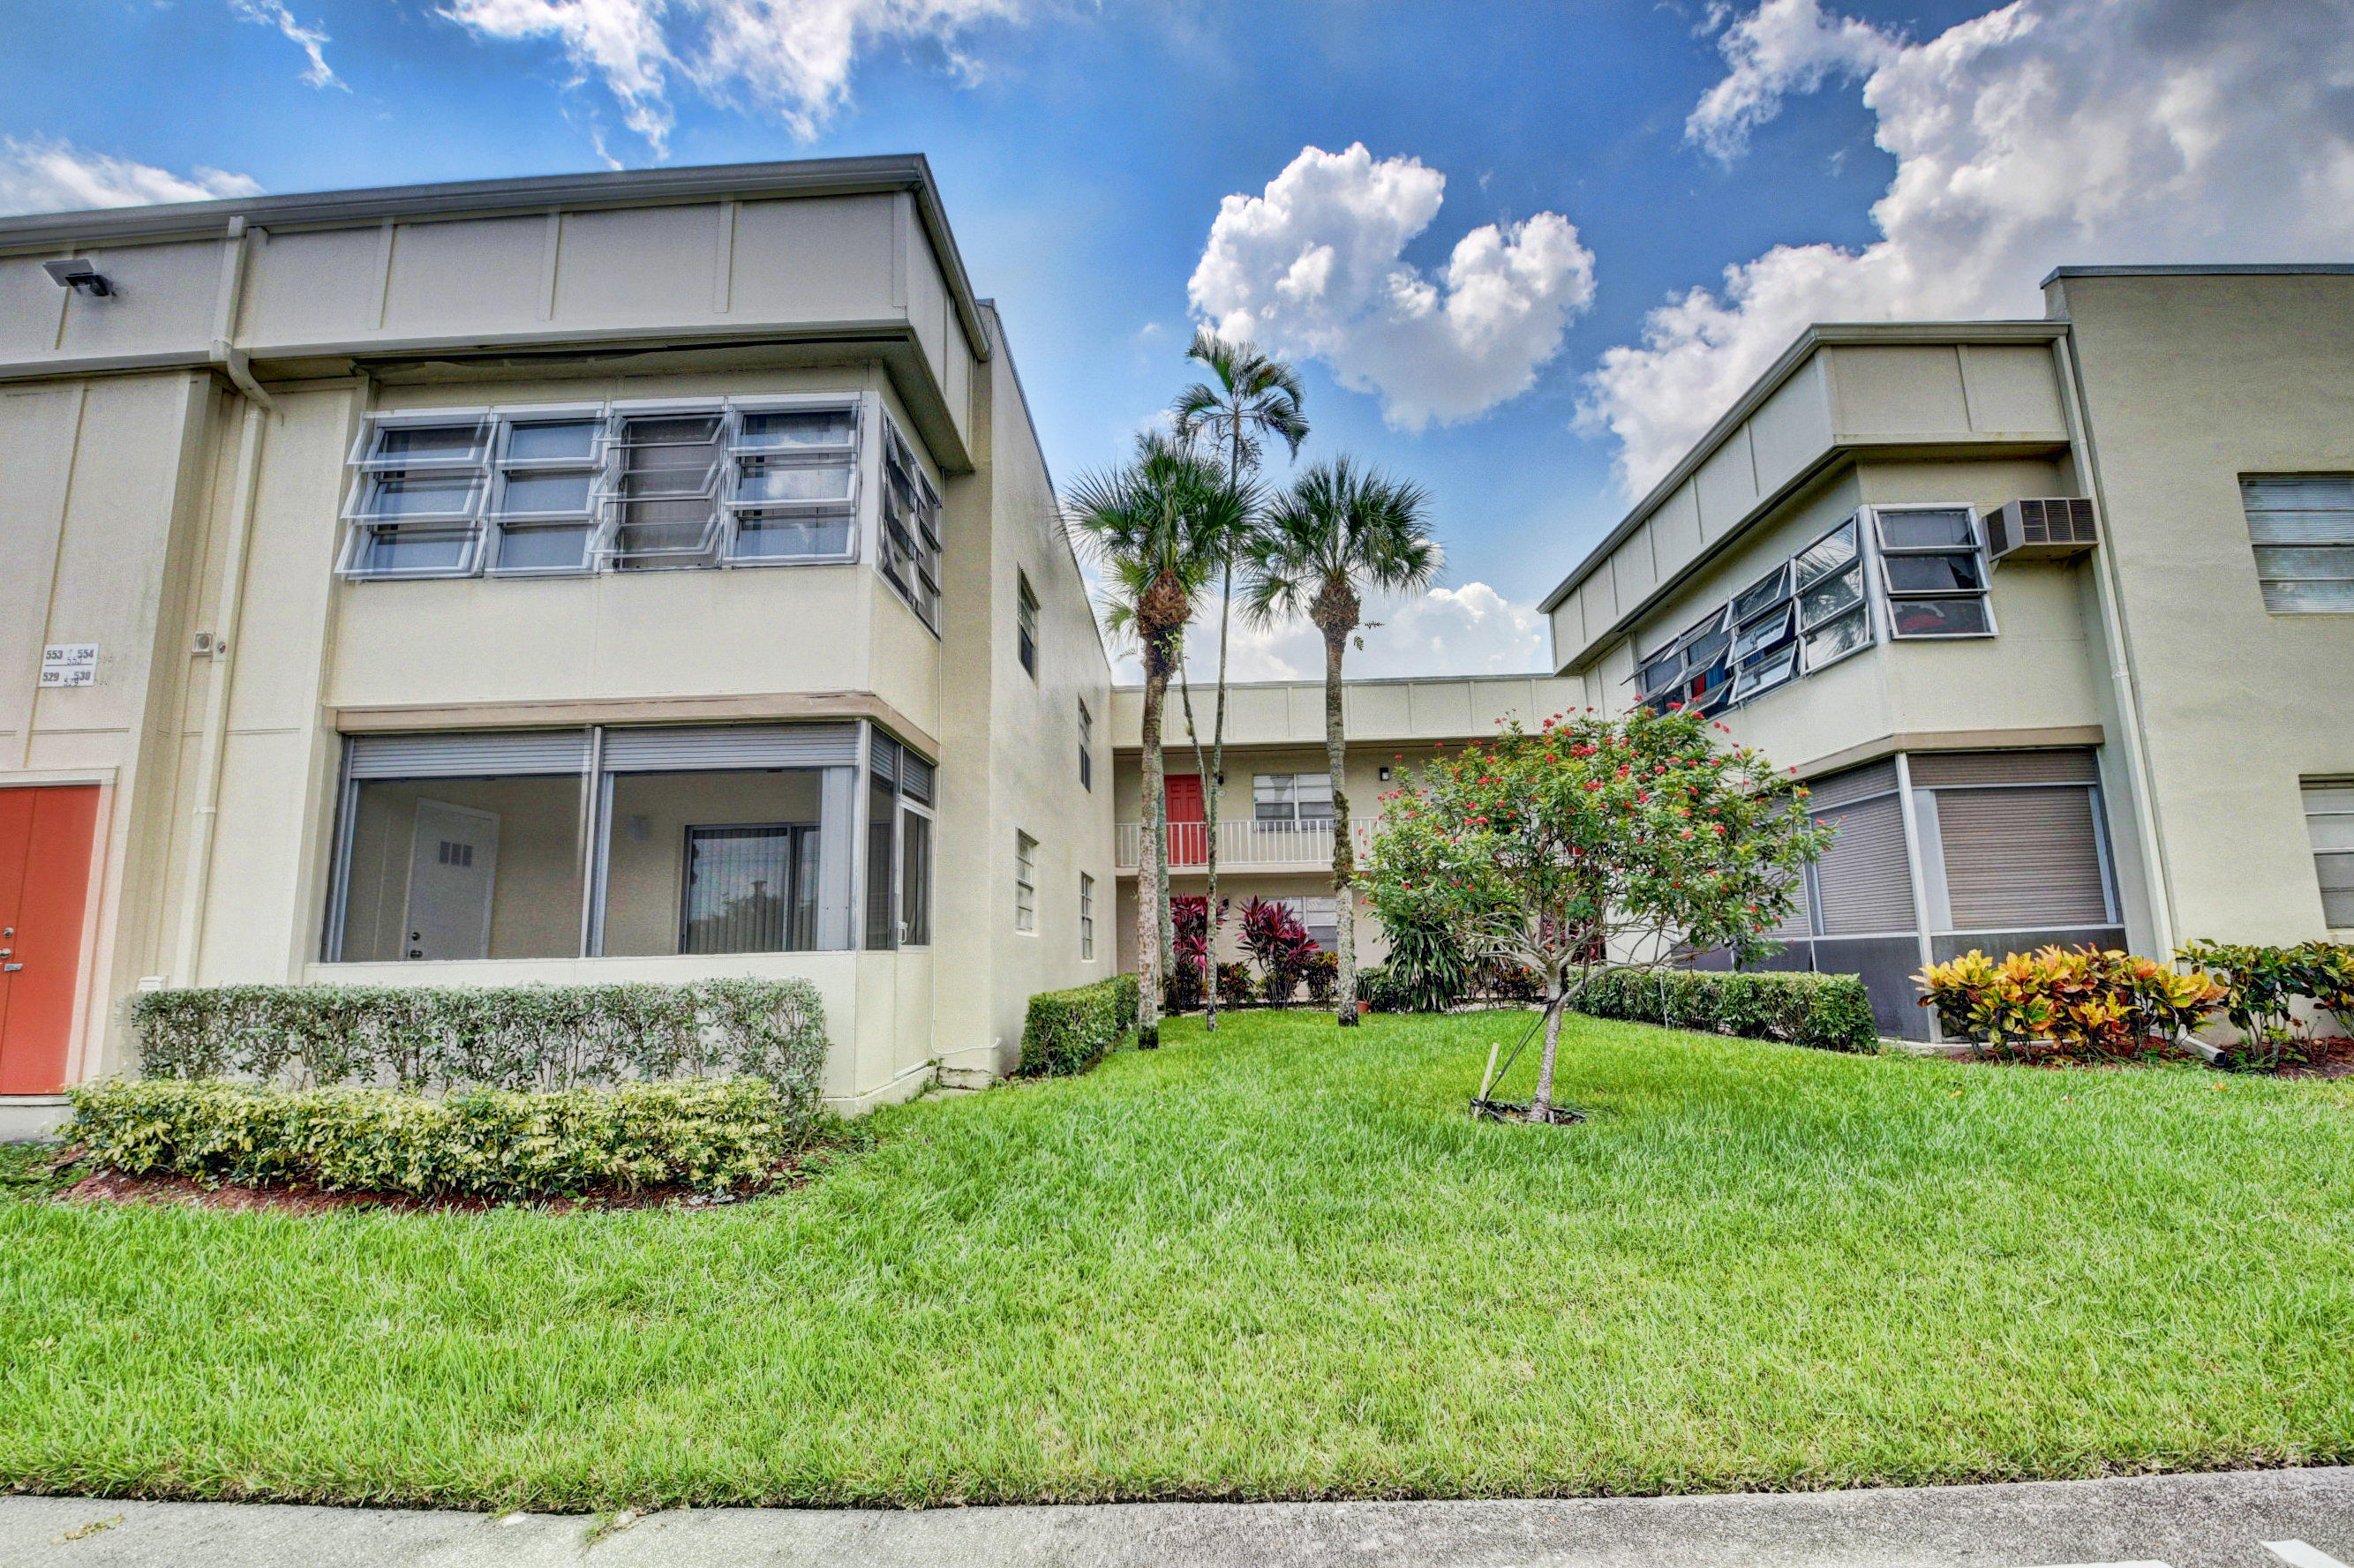 Details for 555 Normandy L, Delray Beach, FL 33484